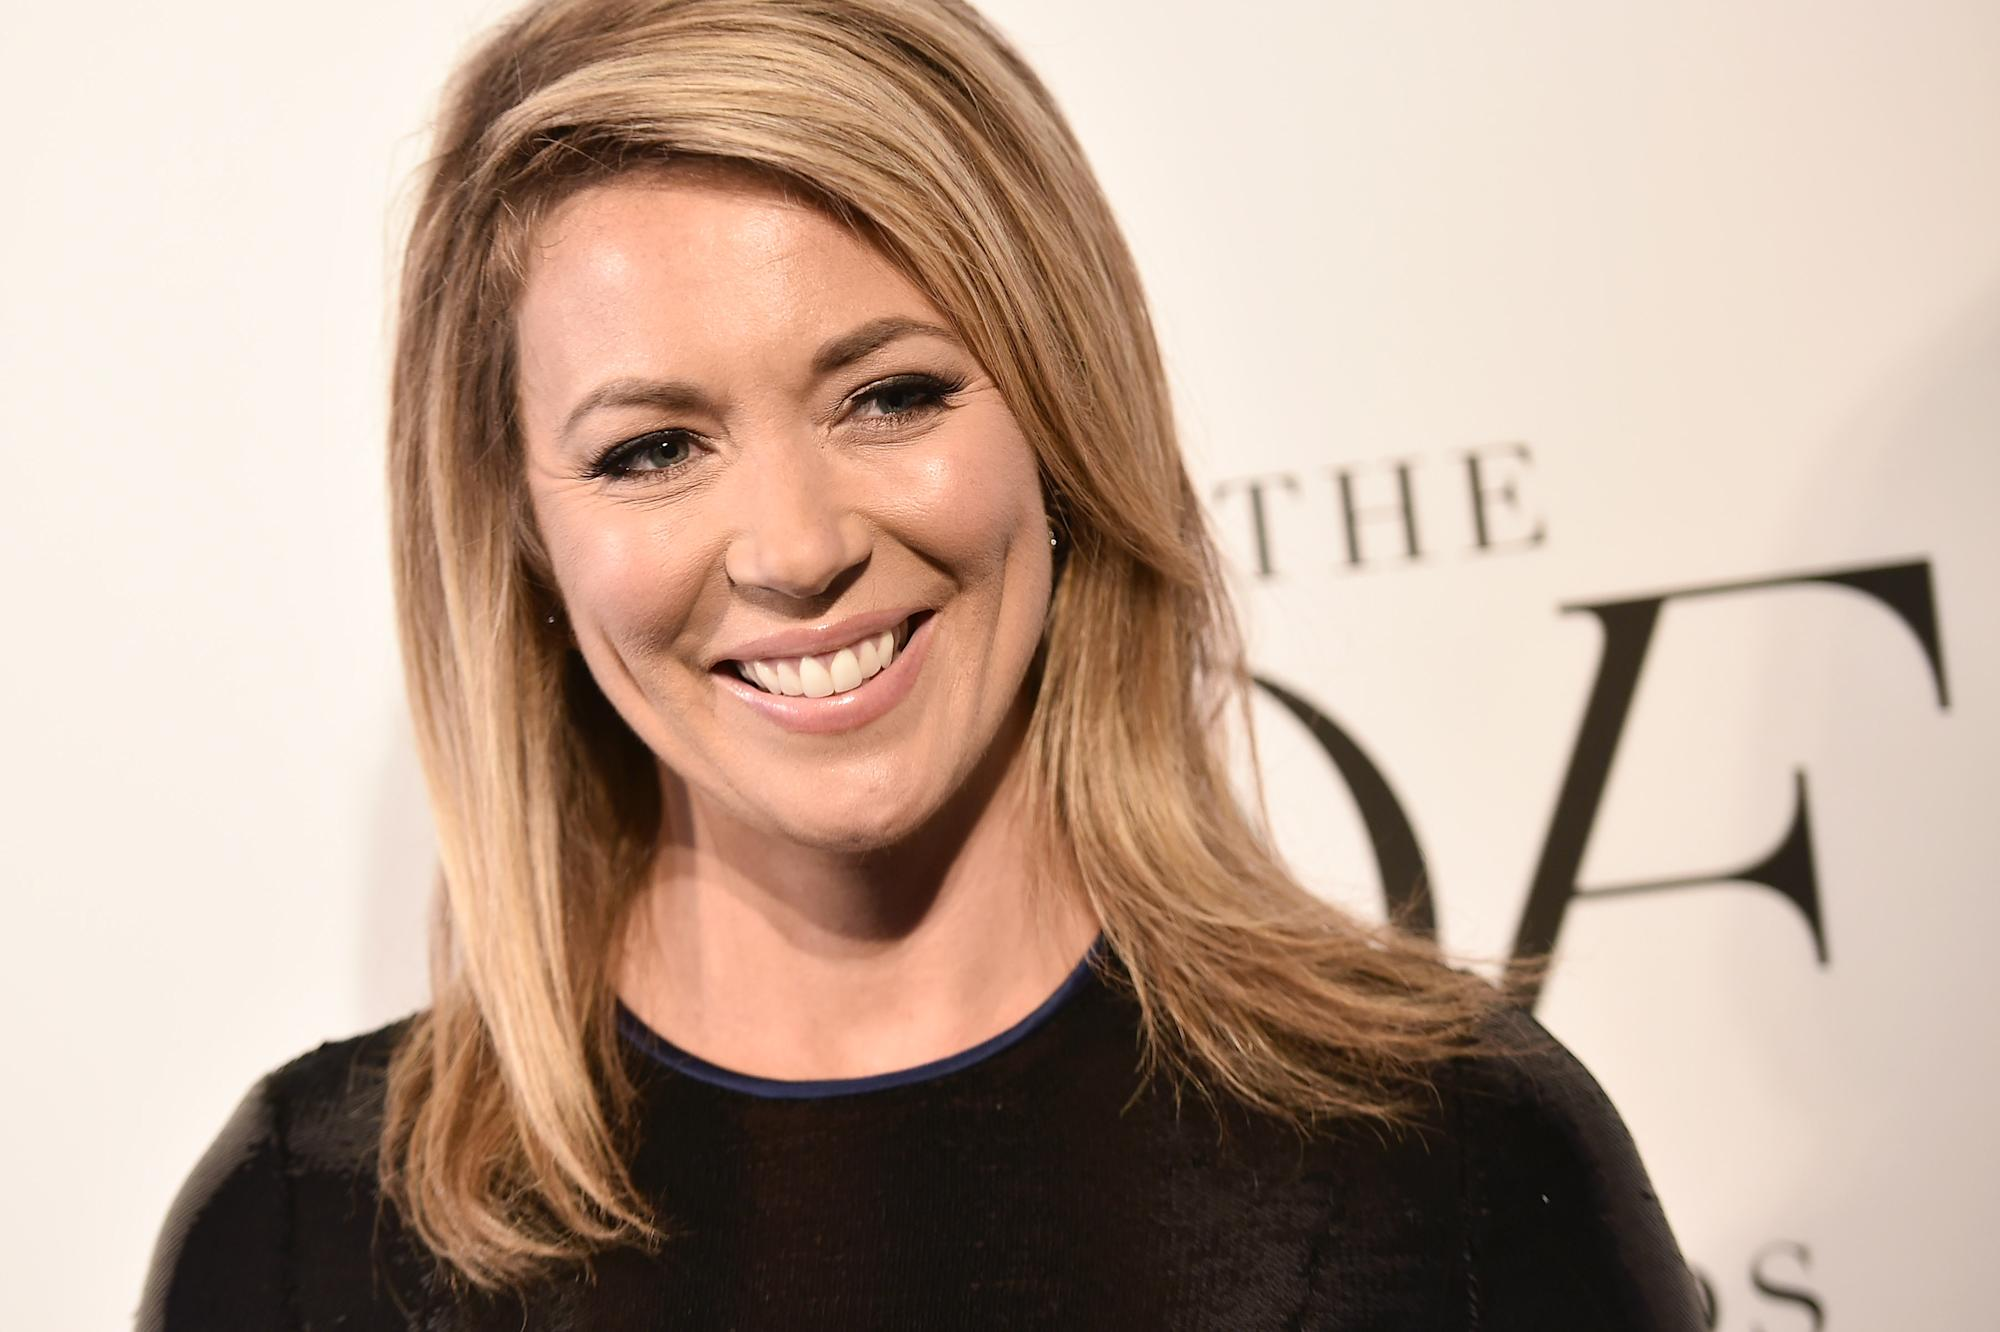 Brooke Baldwin on why she's leaving CNN, new book 'Huddle'